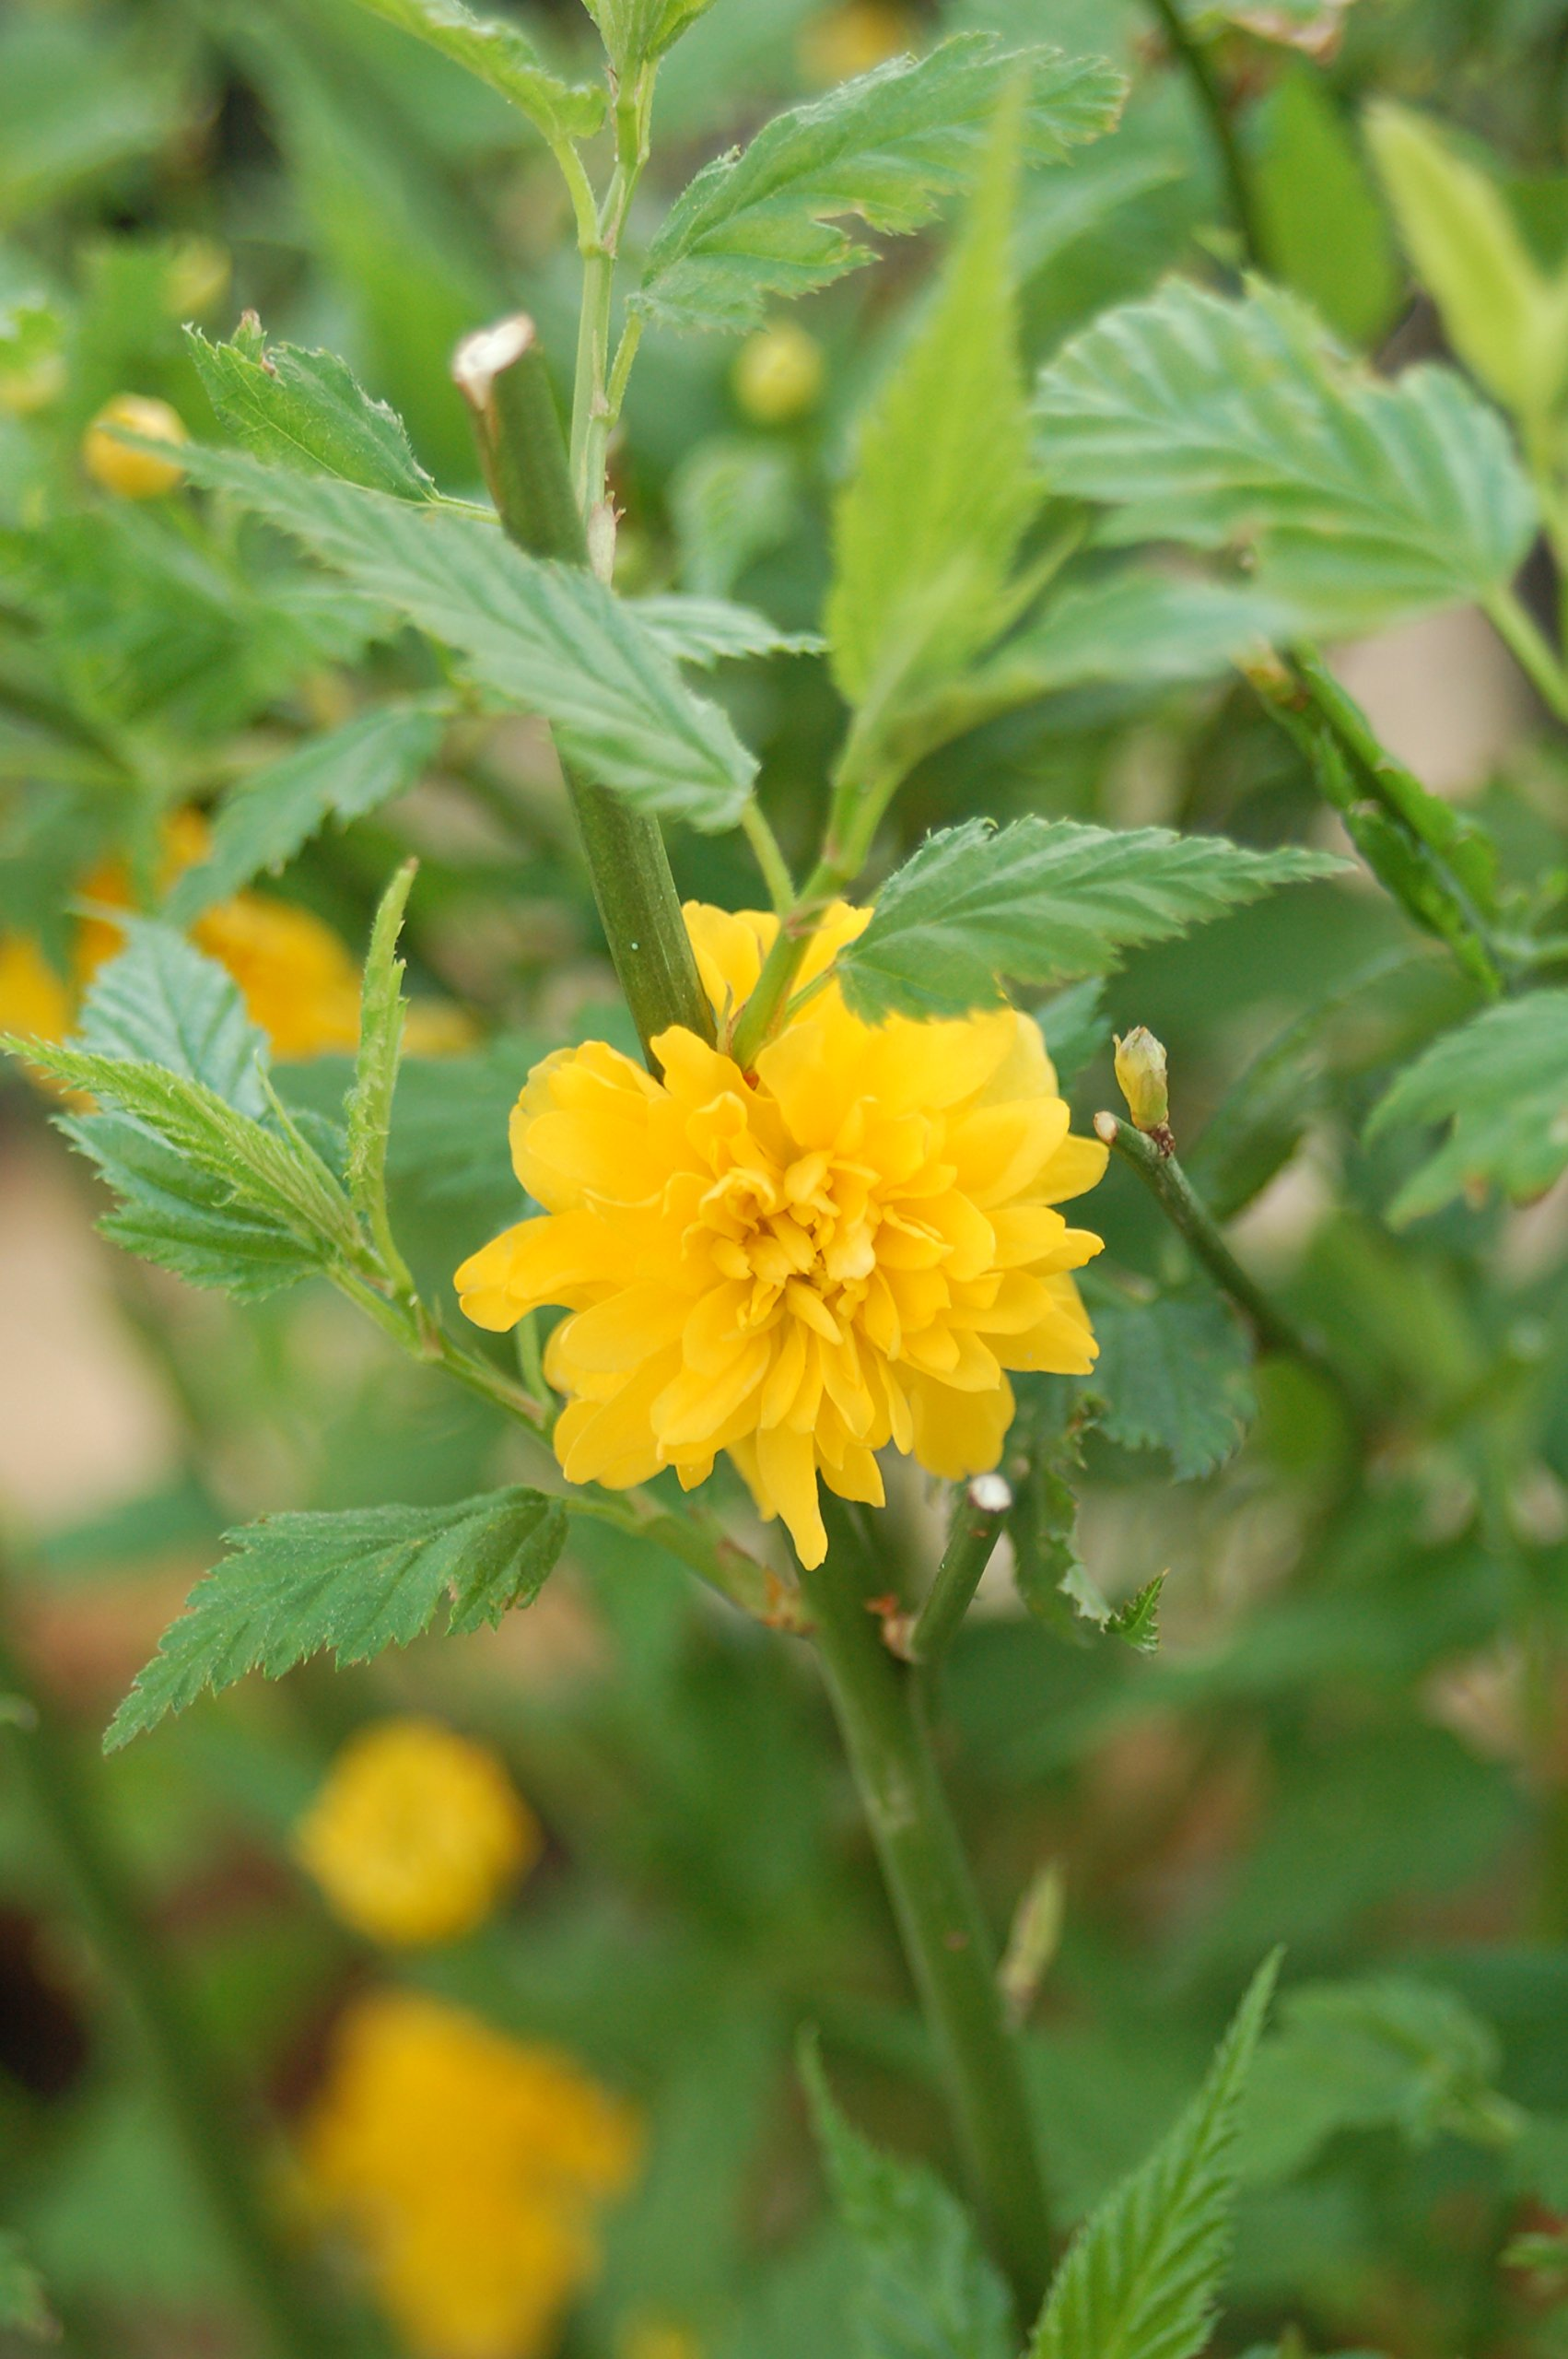 Kerria japonica 'Golden Guinea' (Japanese Kerria) Shrub, yellow flowers, #2 - Size Container by Green Promise Farms (Image #3)